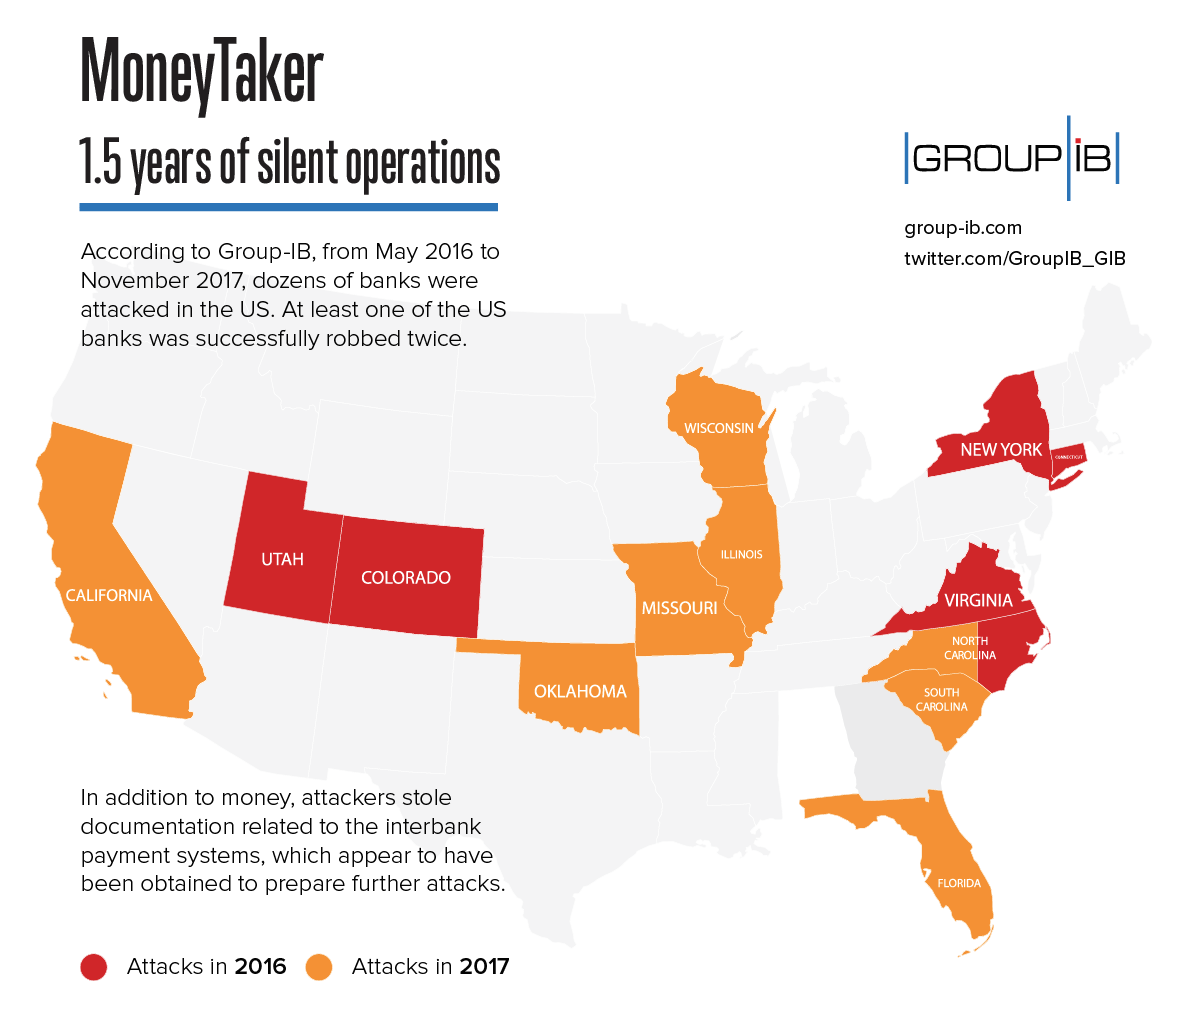 MoneyTaker group: Group-IB uncovered a cyber gang attacking banks in the USA and Russia